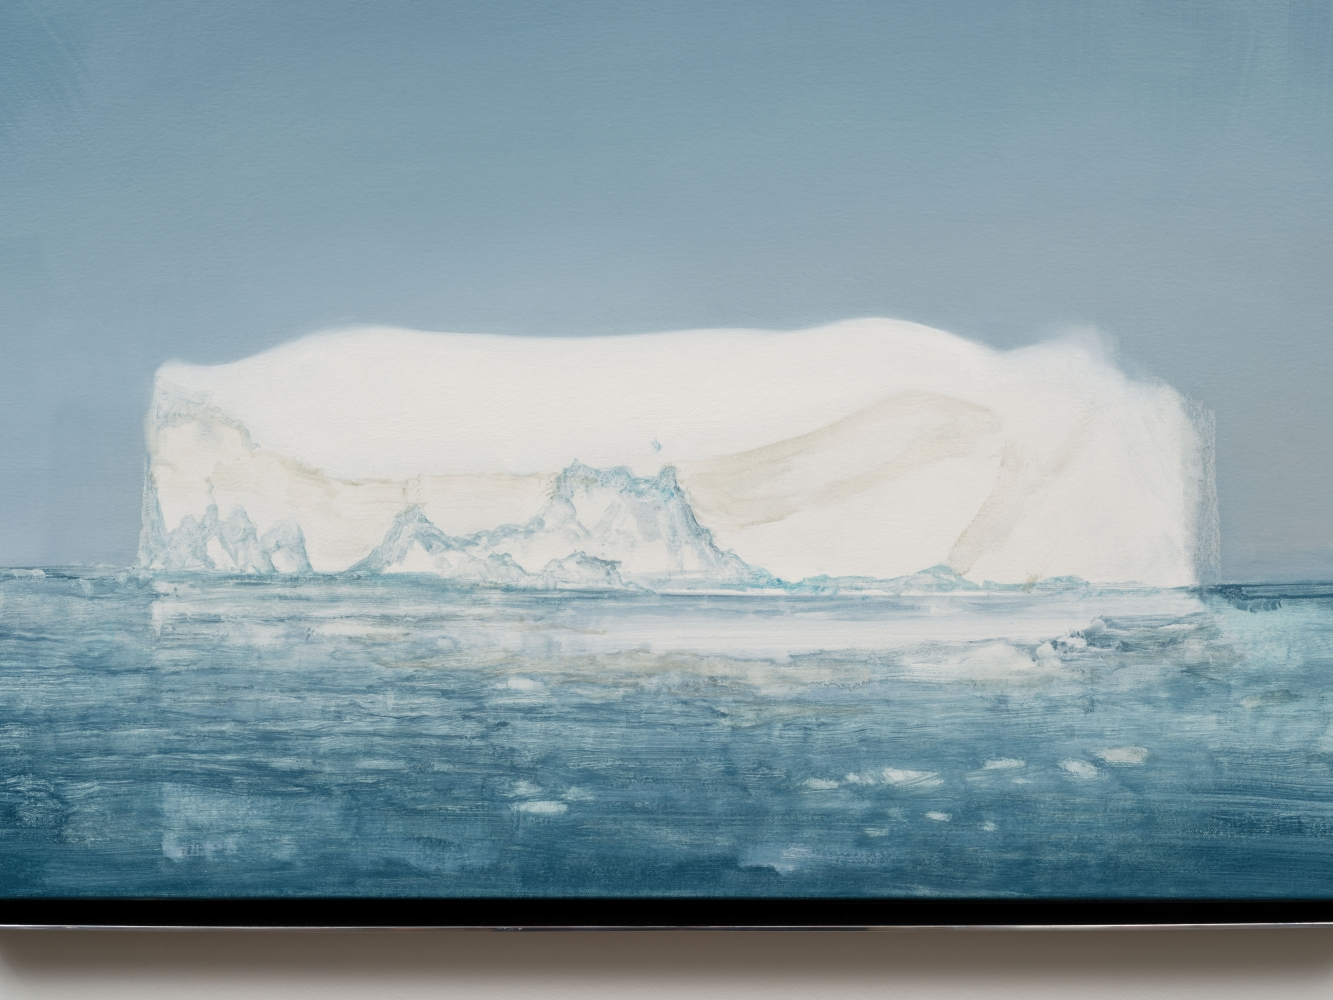 """Rob Reynolds """"Iceberg (Jakobshavn Isbrae 69.1667° N, 49.9167° W Greenland, 21 July, 2019, 5:00 AM)"""", 2021, Oil, alkyd and acrylic polymer paint on canvas in welded aluminum artist's frame, Framed Dimensions: 24 x 30 inches"""